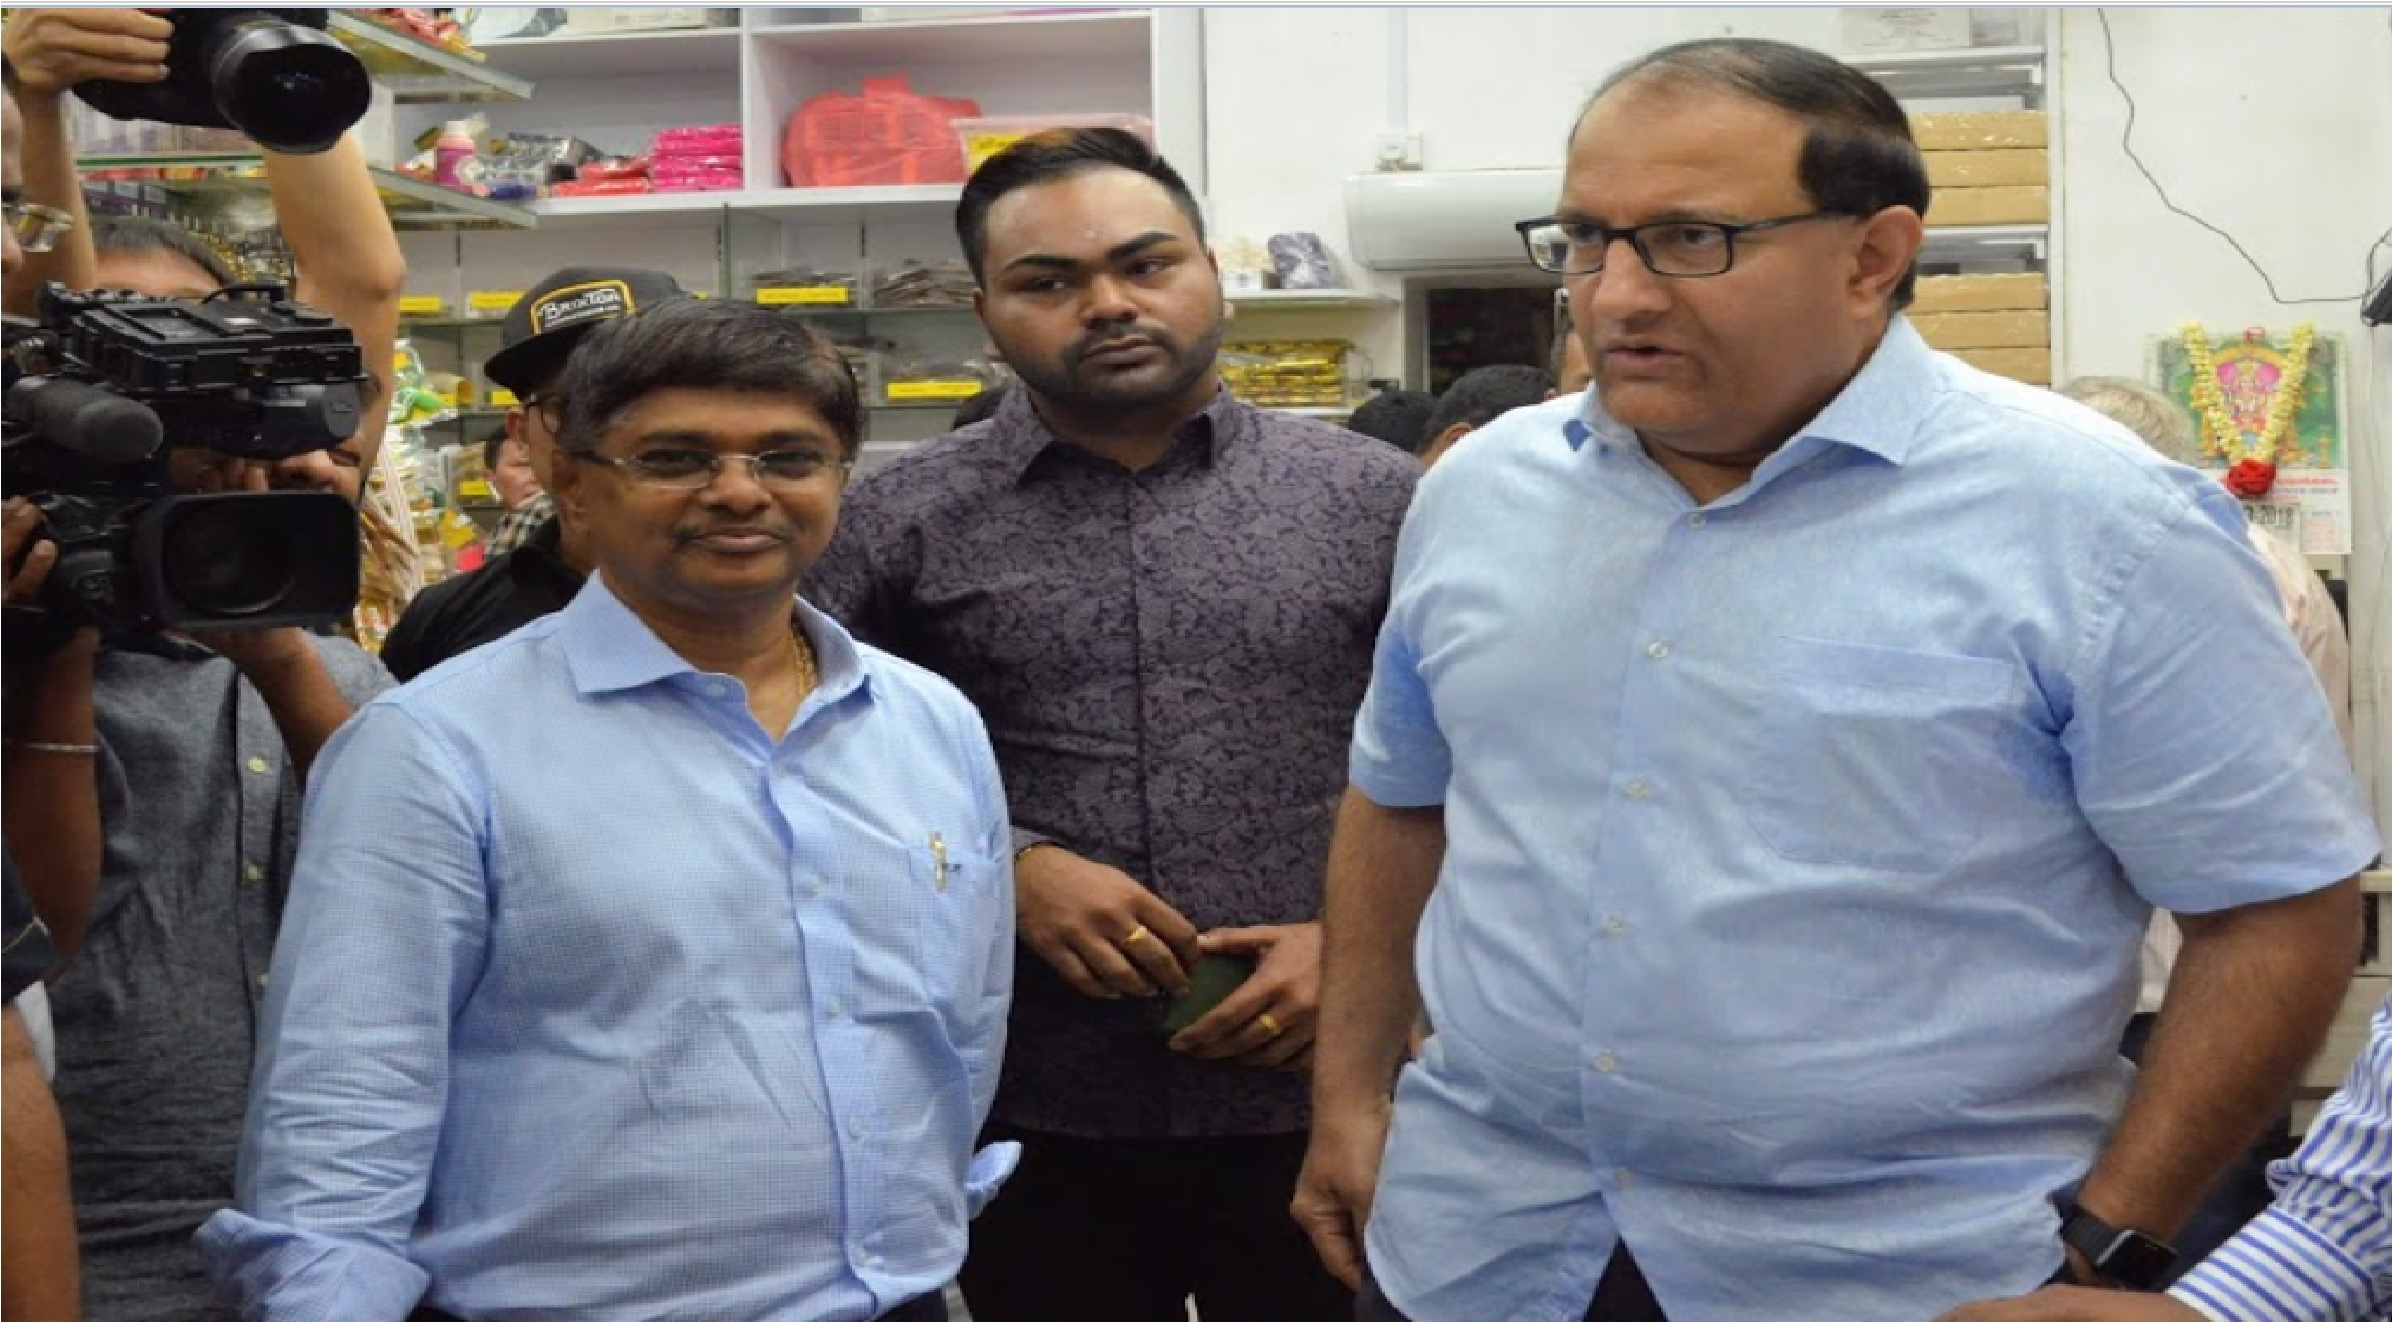 Raja Kumar Chandra with Minister S Iswaran former Minister for Trade and Industry., current Minister for Communications and Information and Minister in charge of Cyber Security, during his visit to Jothi Store. Photo courtesy: Connected to India